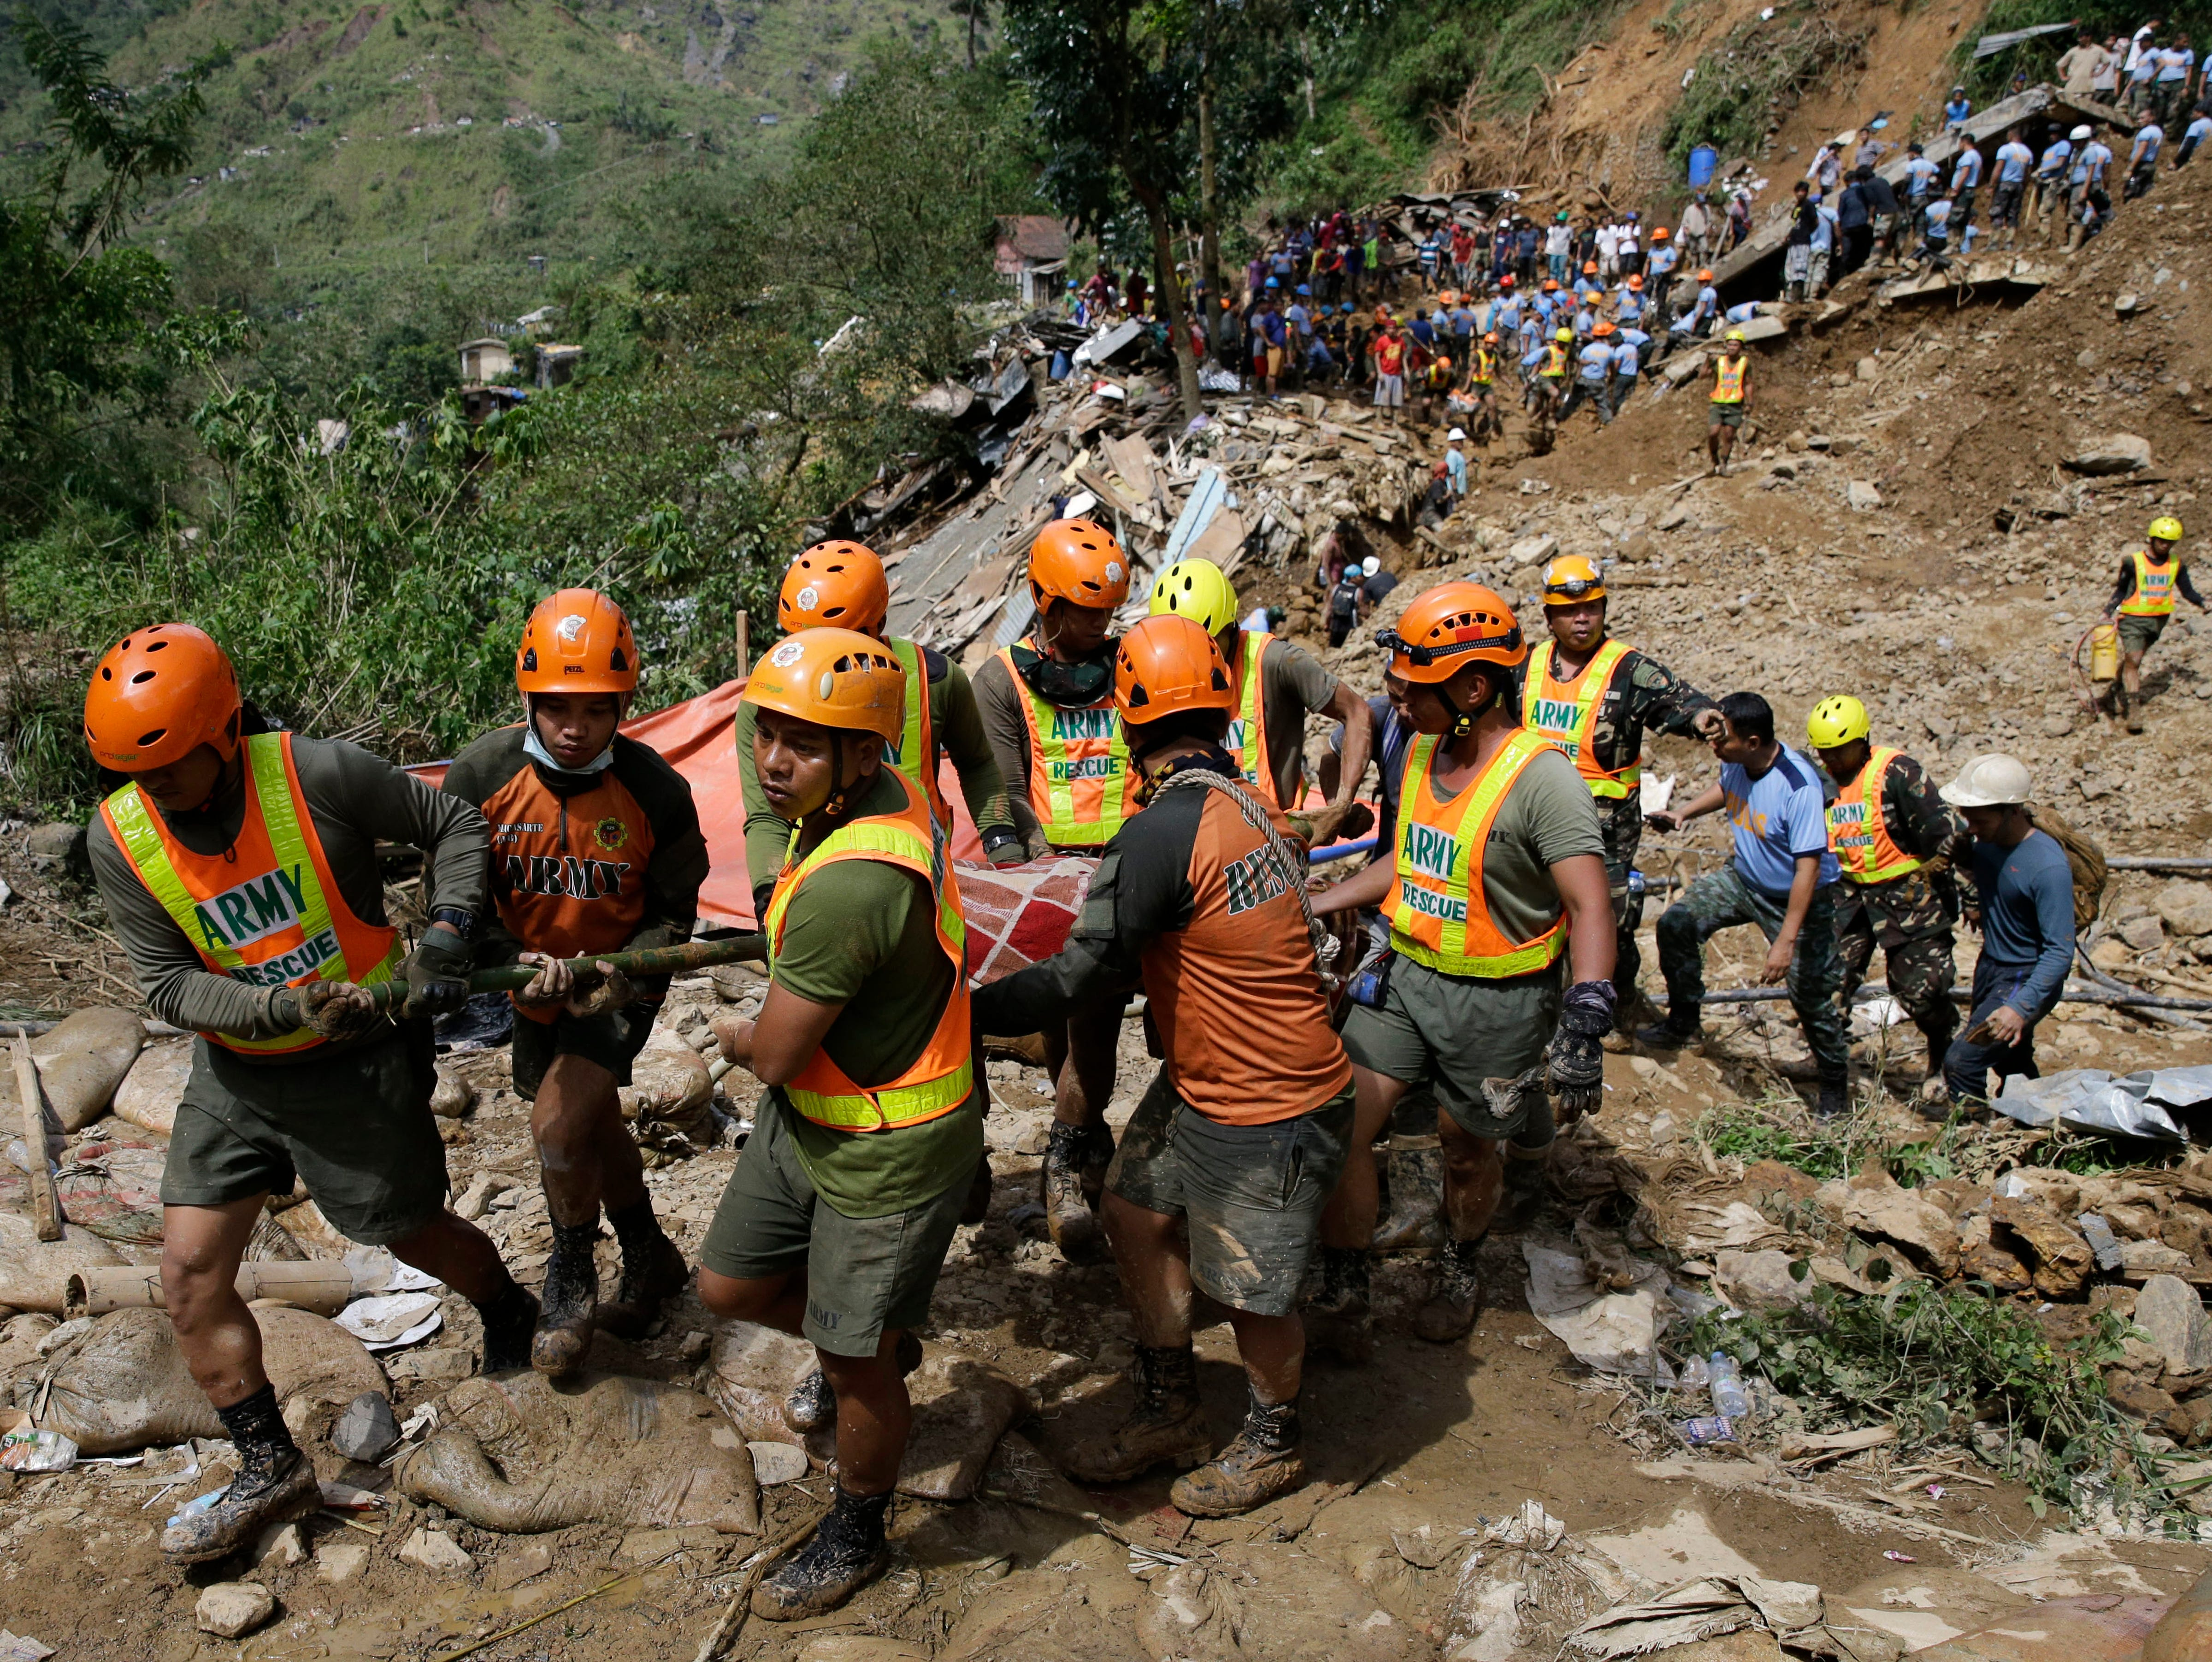 Rescuers carry a body recovered from a landslide caused by Typhoon Mangkhut in Itogon, Benguet province, northern Philippines on Monday, Sept. 17, 2018. Itogon Mayor Victorio Palangdan said that at the height of the typhoon's onslaught Saturday afternoon, dozens of people, mostly miners and their families, rushed into an old three-story building in the village of Ucab. The building, a former mining bunkhouse that had been transformed into a chapel, was obliterated when part of a mountain slope collapsed.